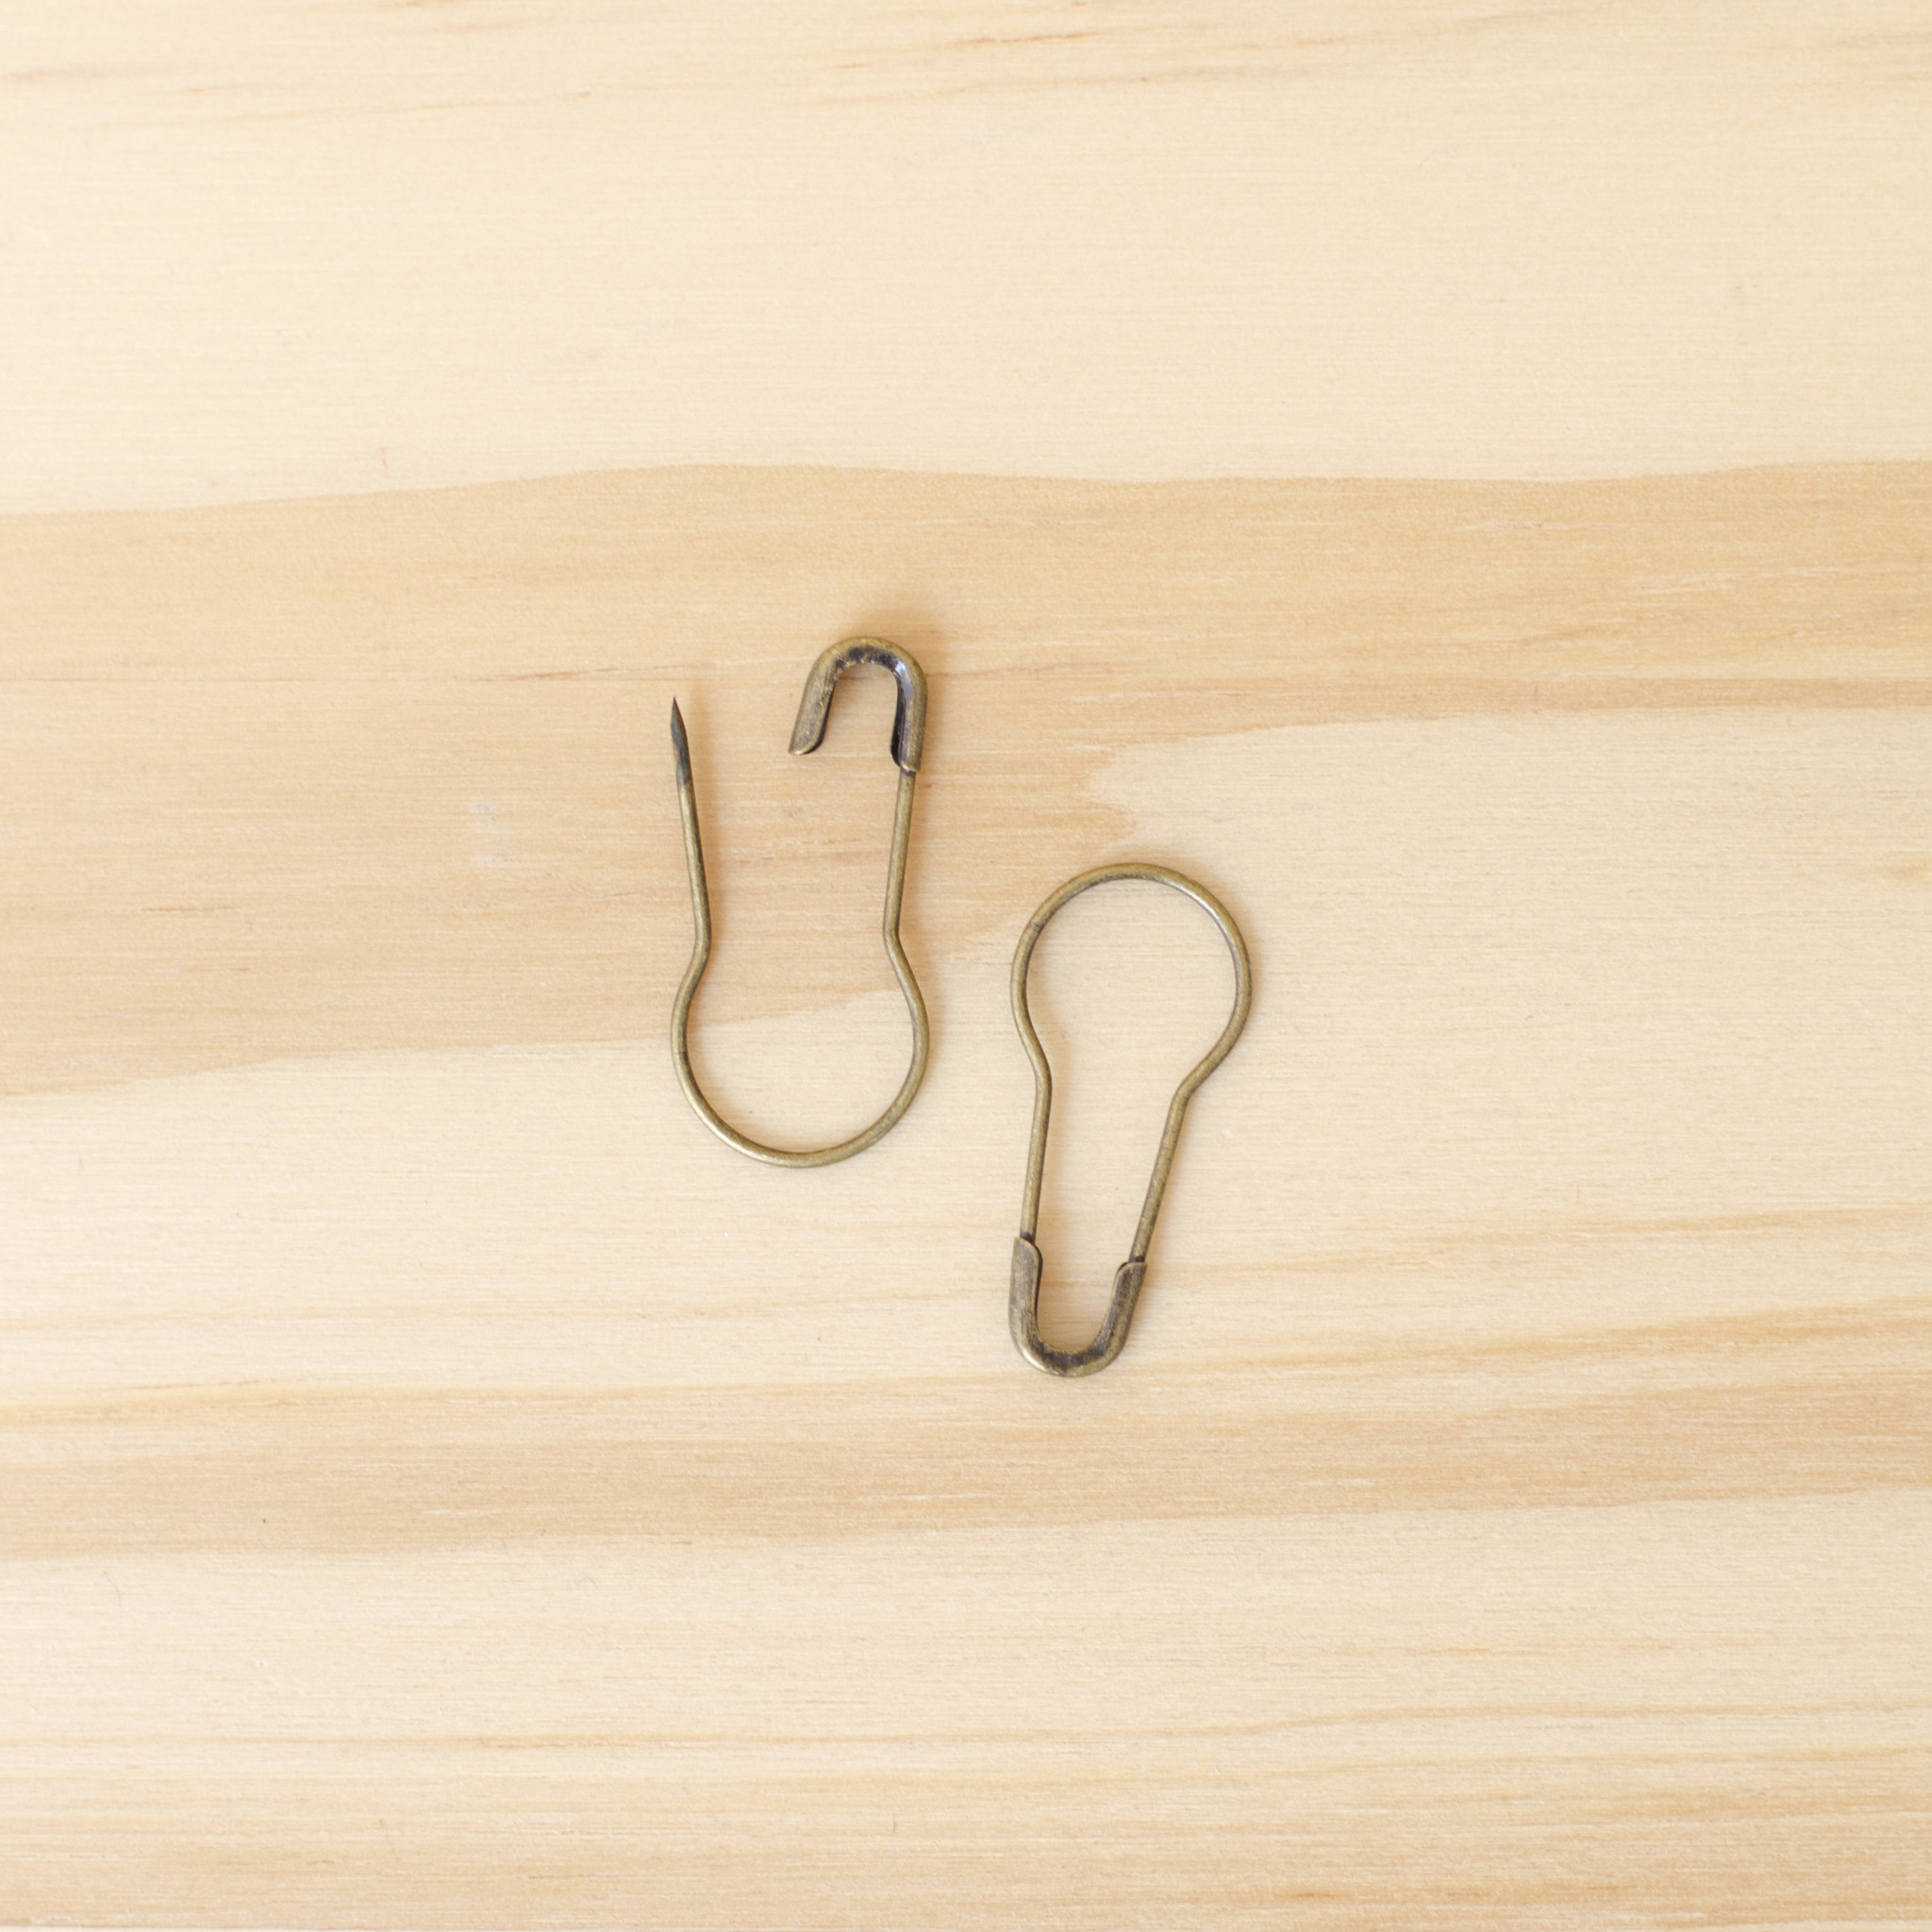 Fringe Supply Co. : Removable Stitch Markers